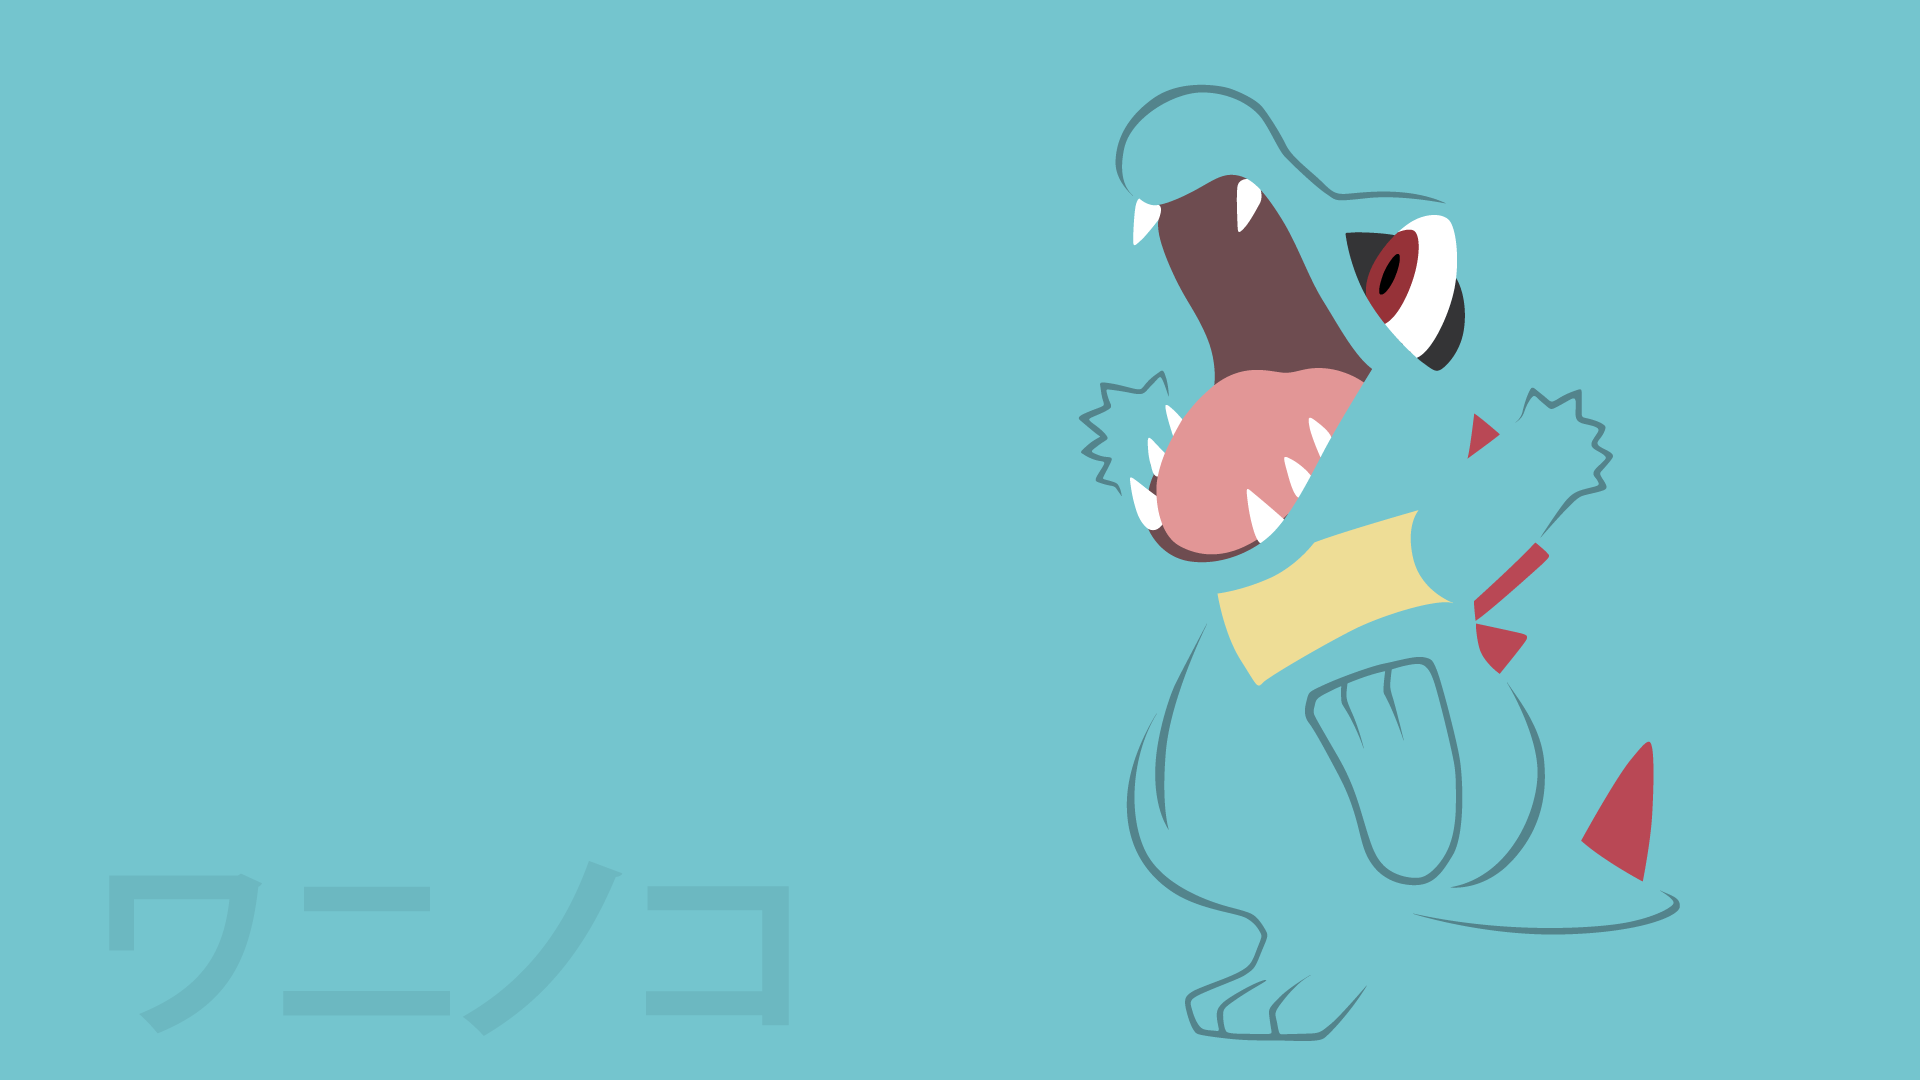 Totodile by DannyMyBrother on DeviantArt